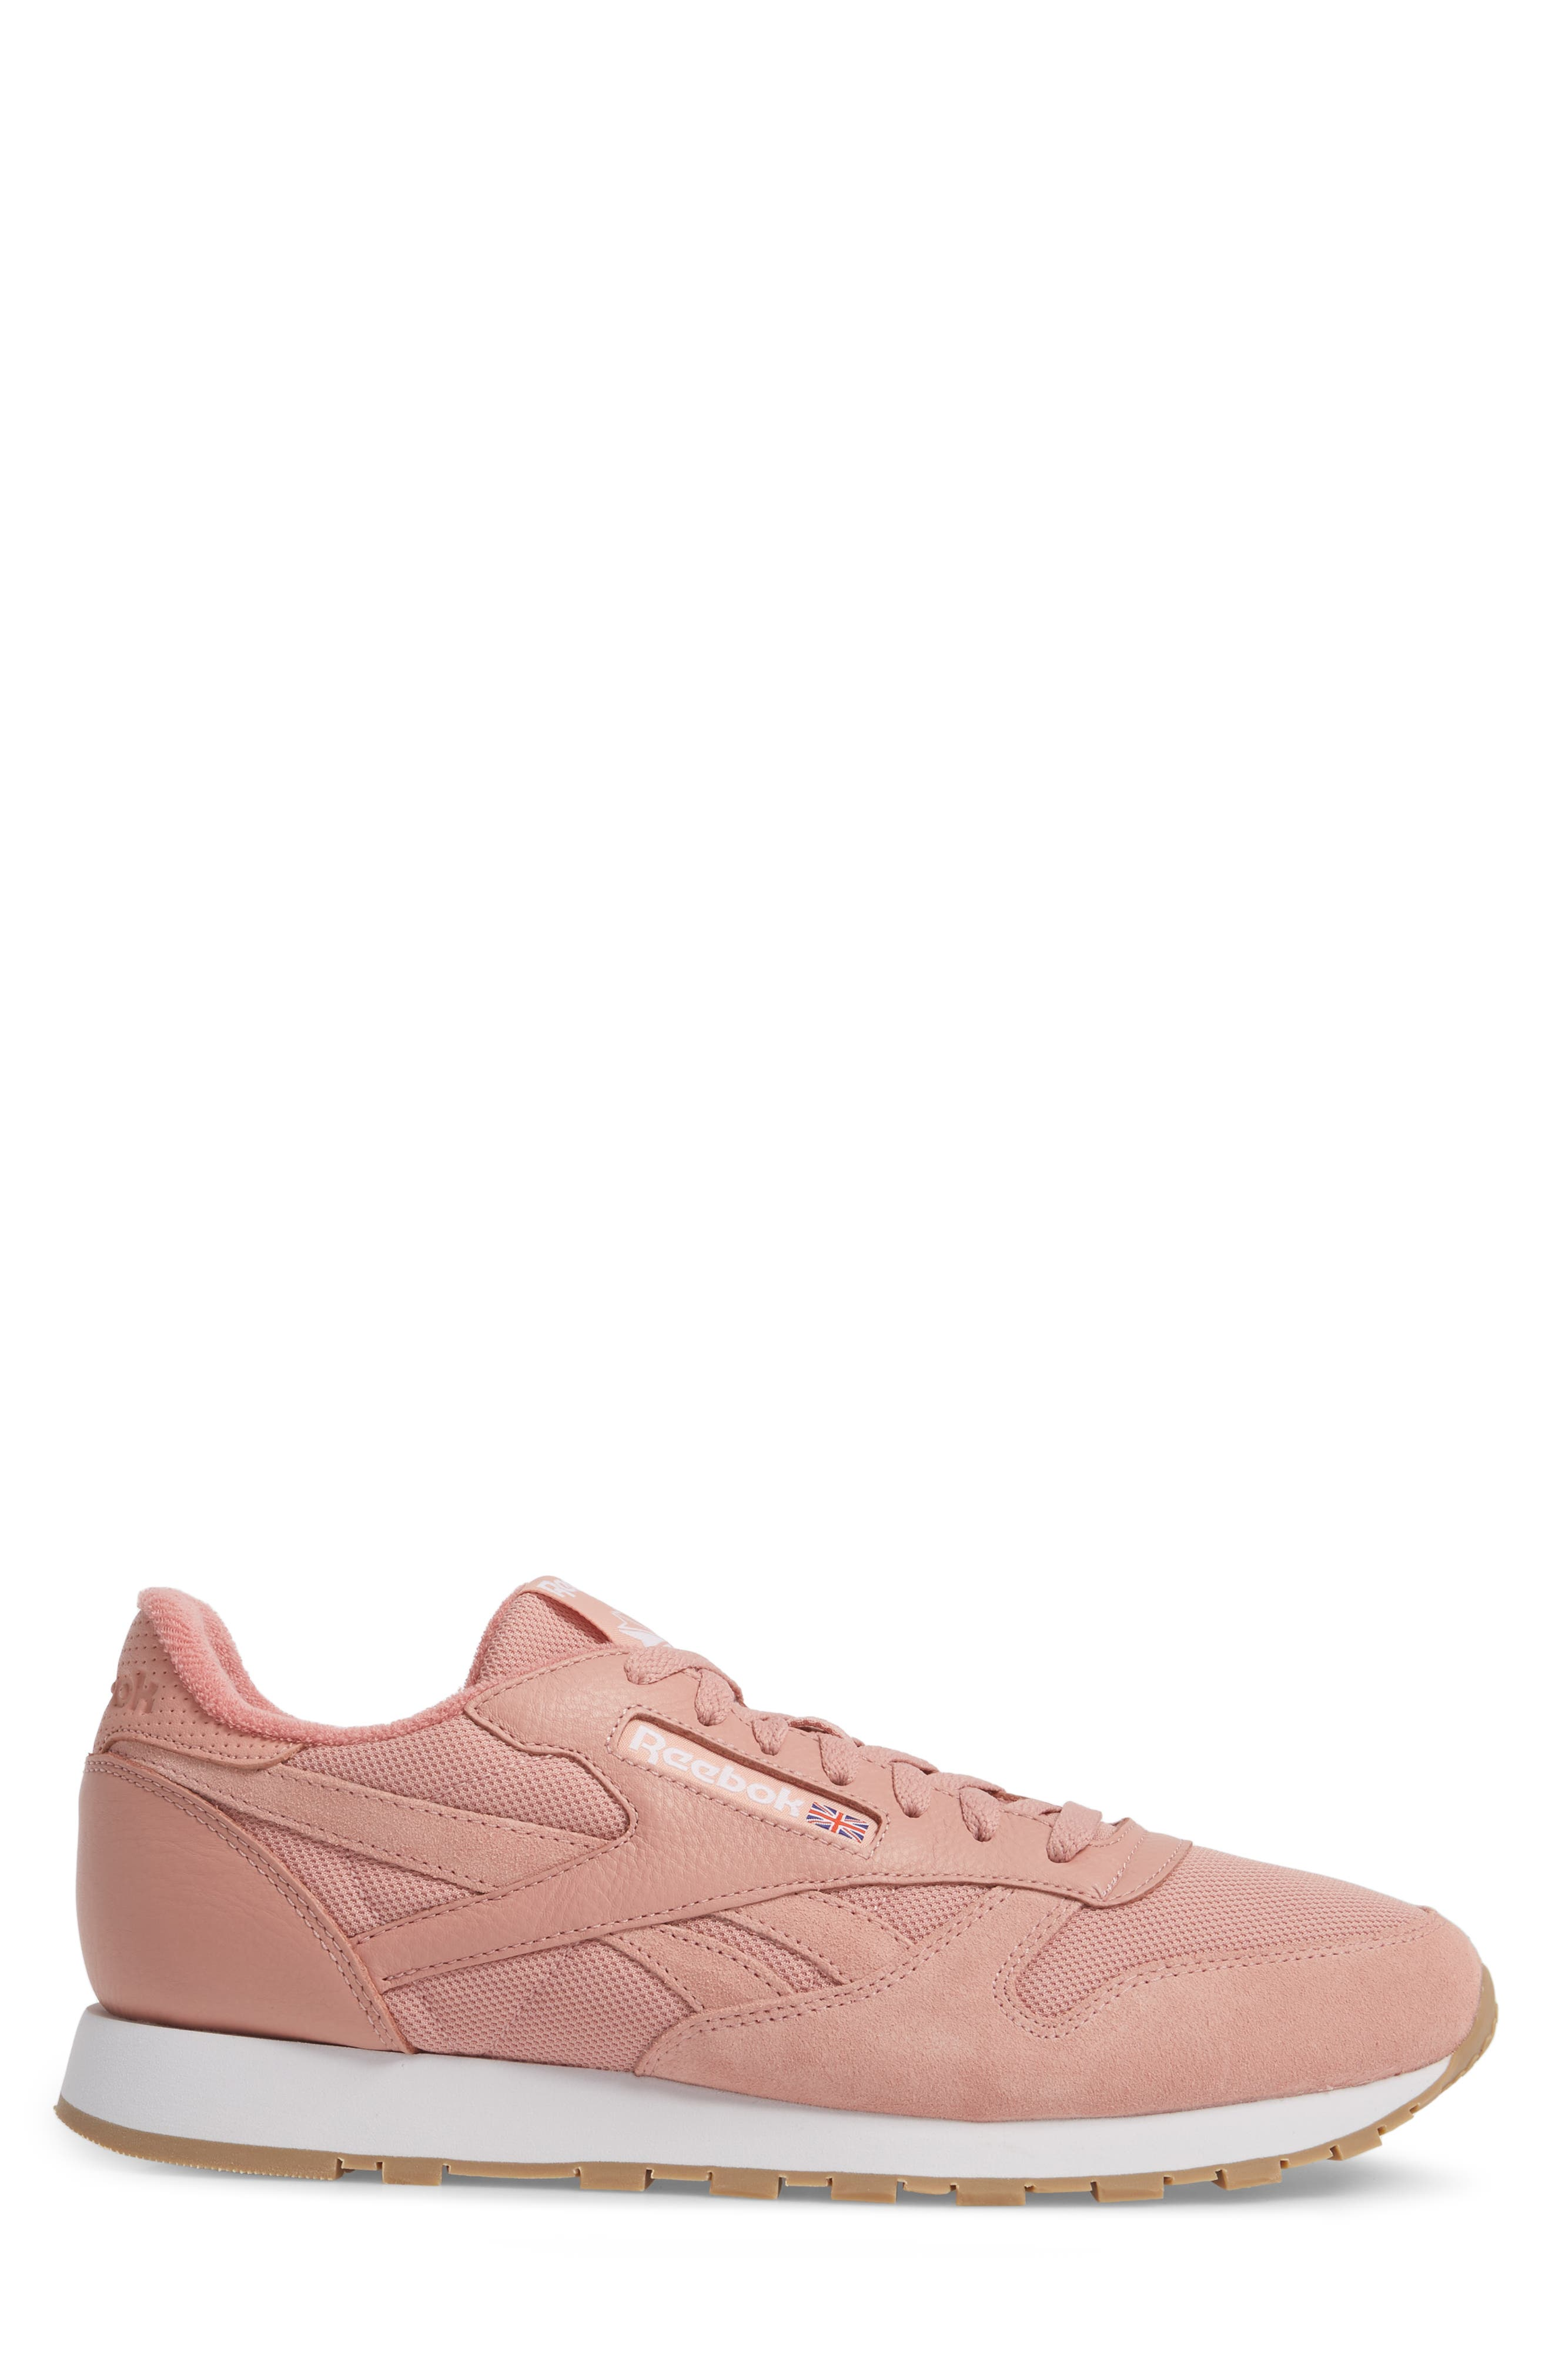 ESTL Classic Leather Sneaker,                             Alternate thumbnail 3, color,                             Chalk Pink/ White